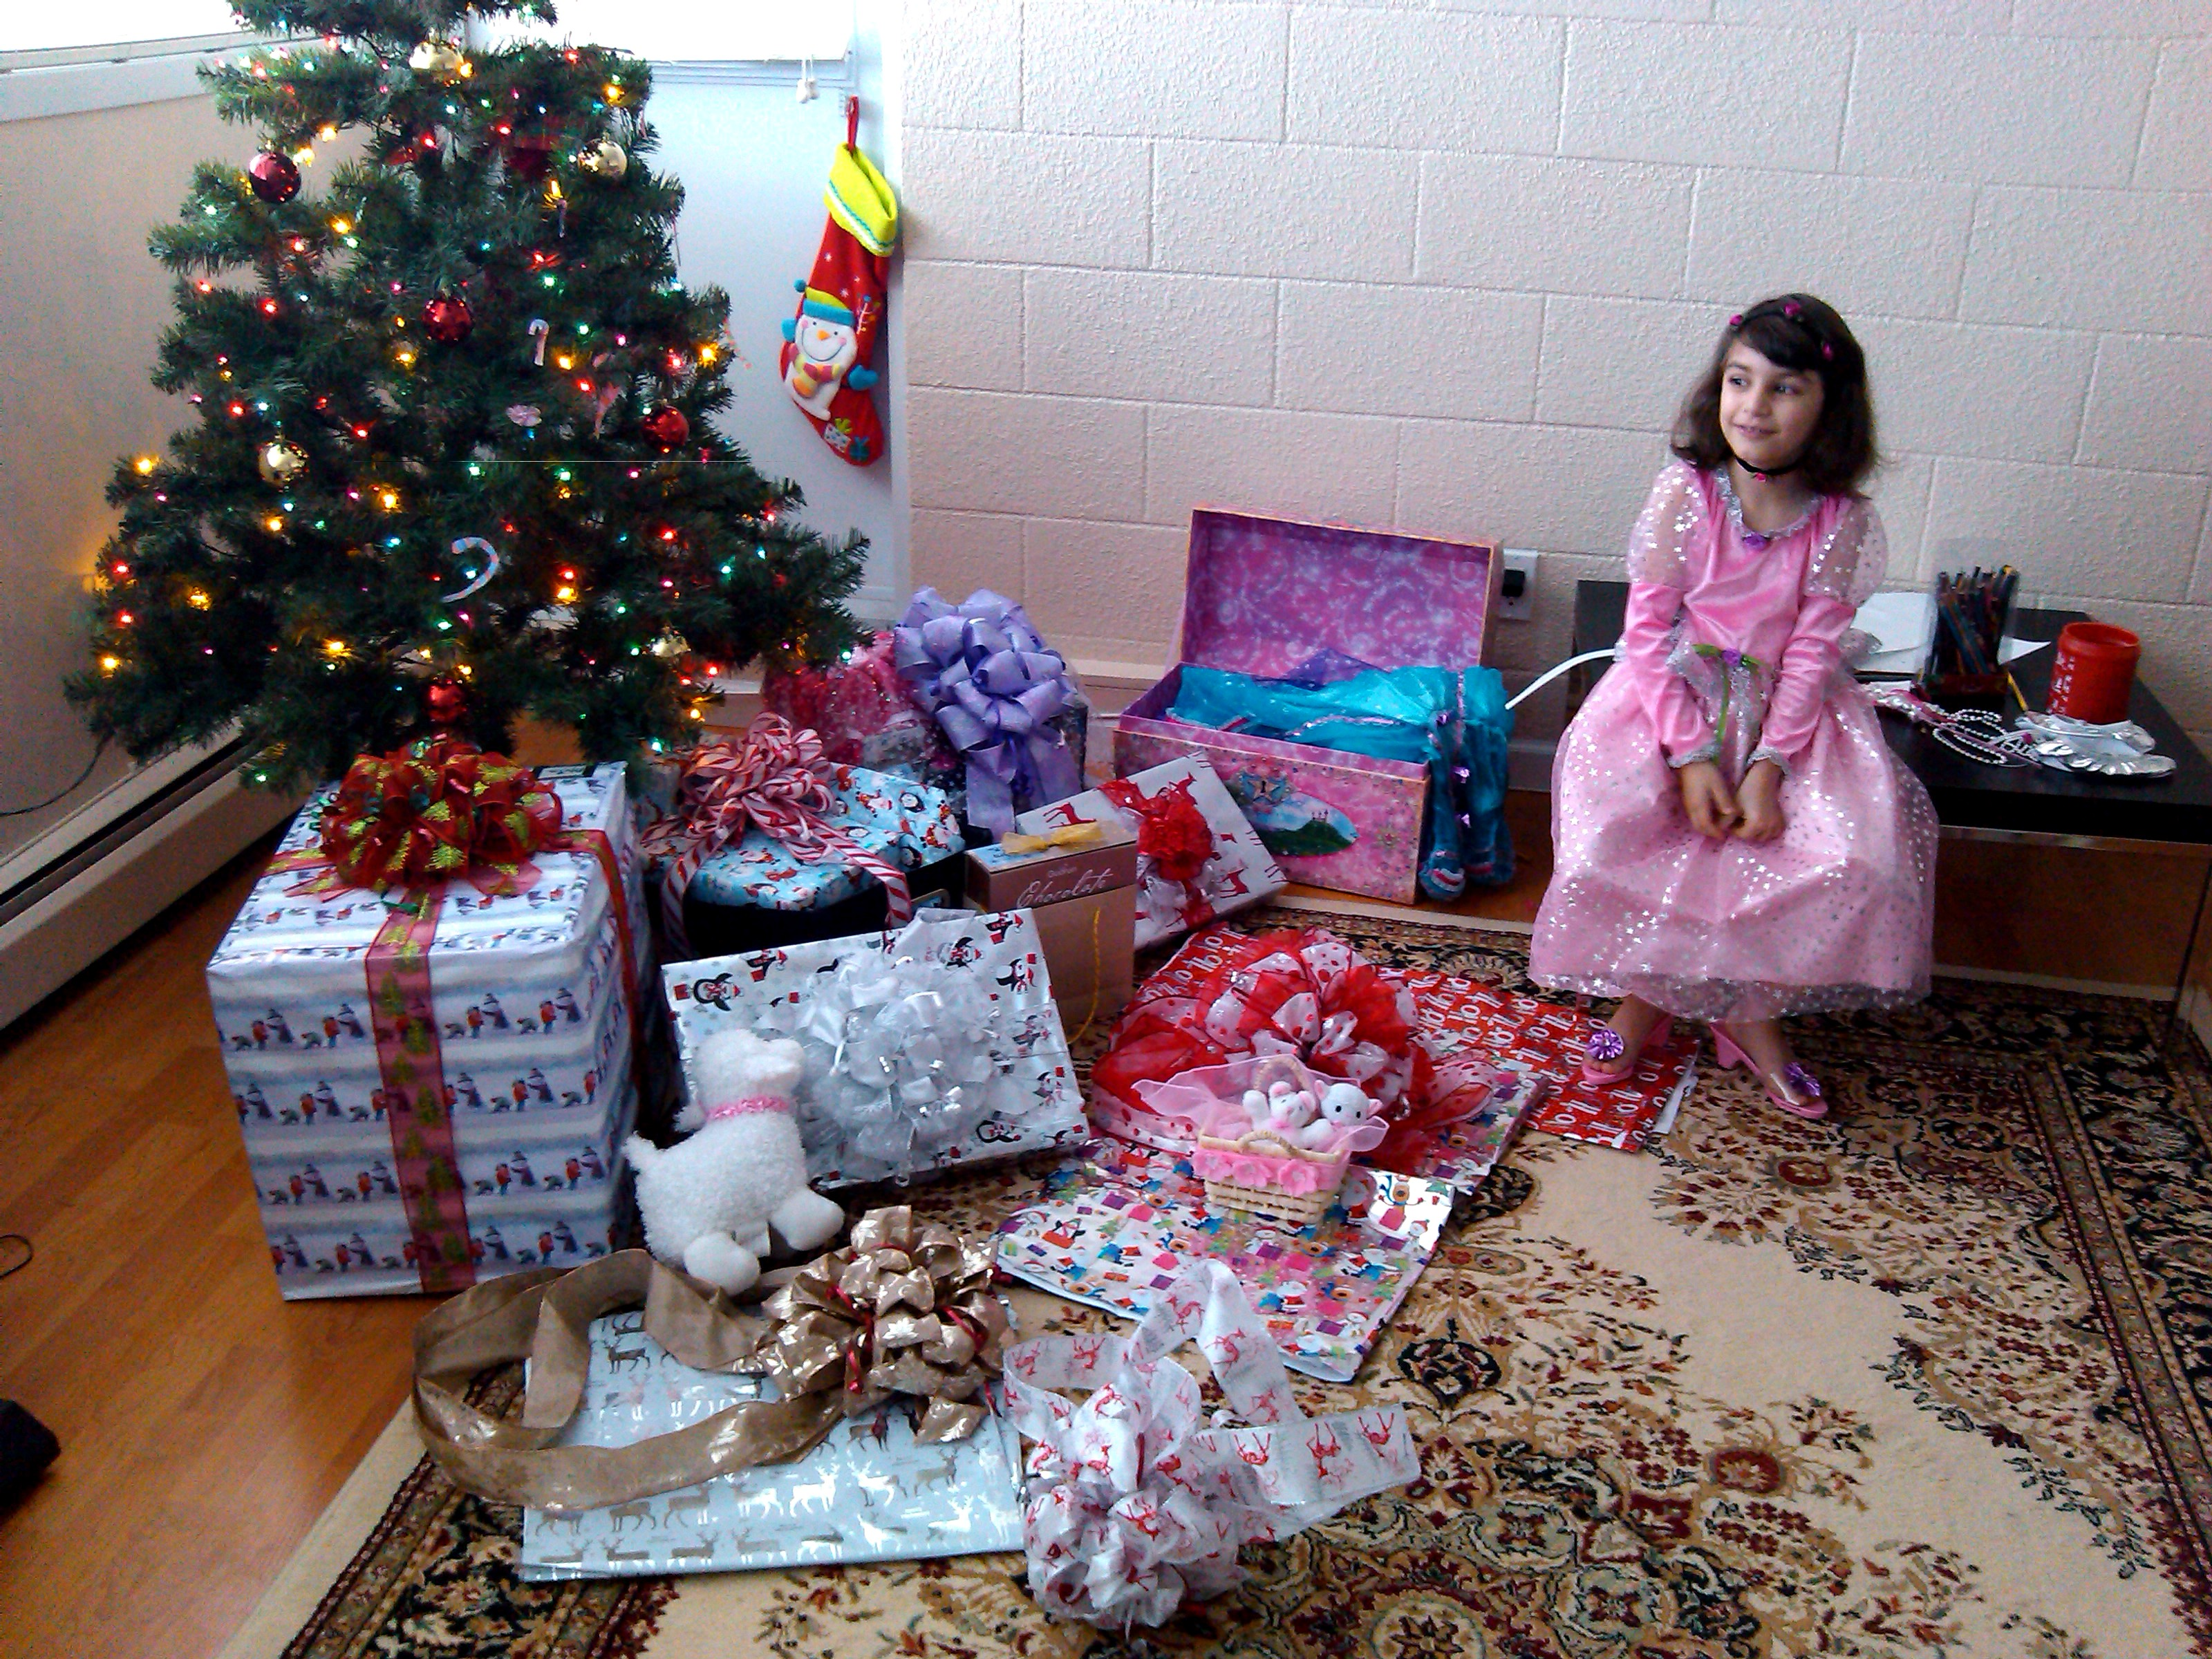 Elana with her presents